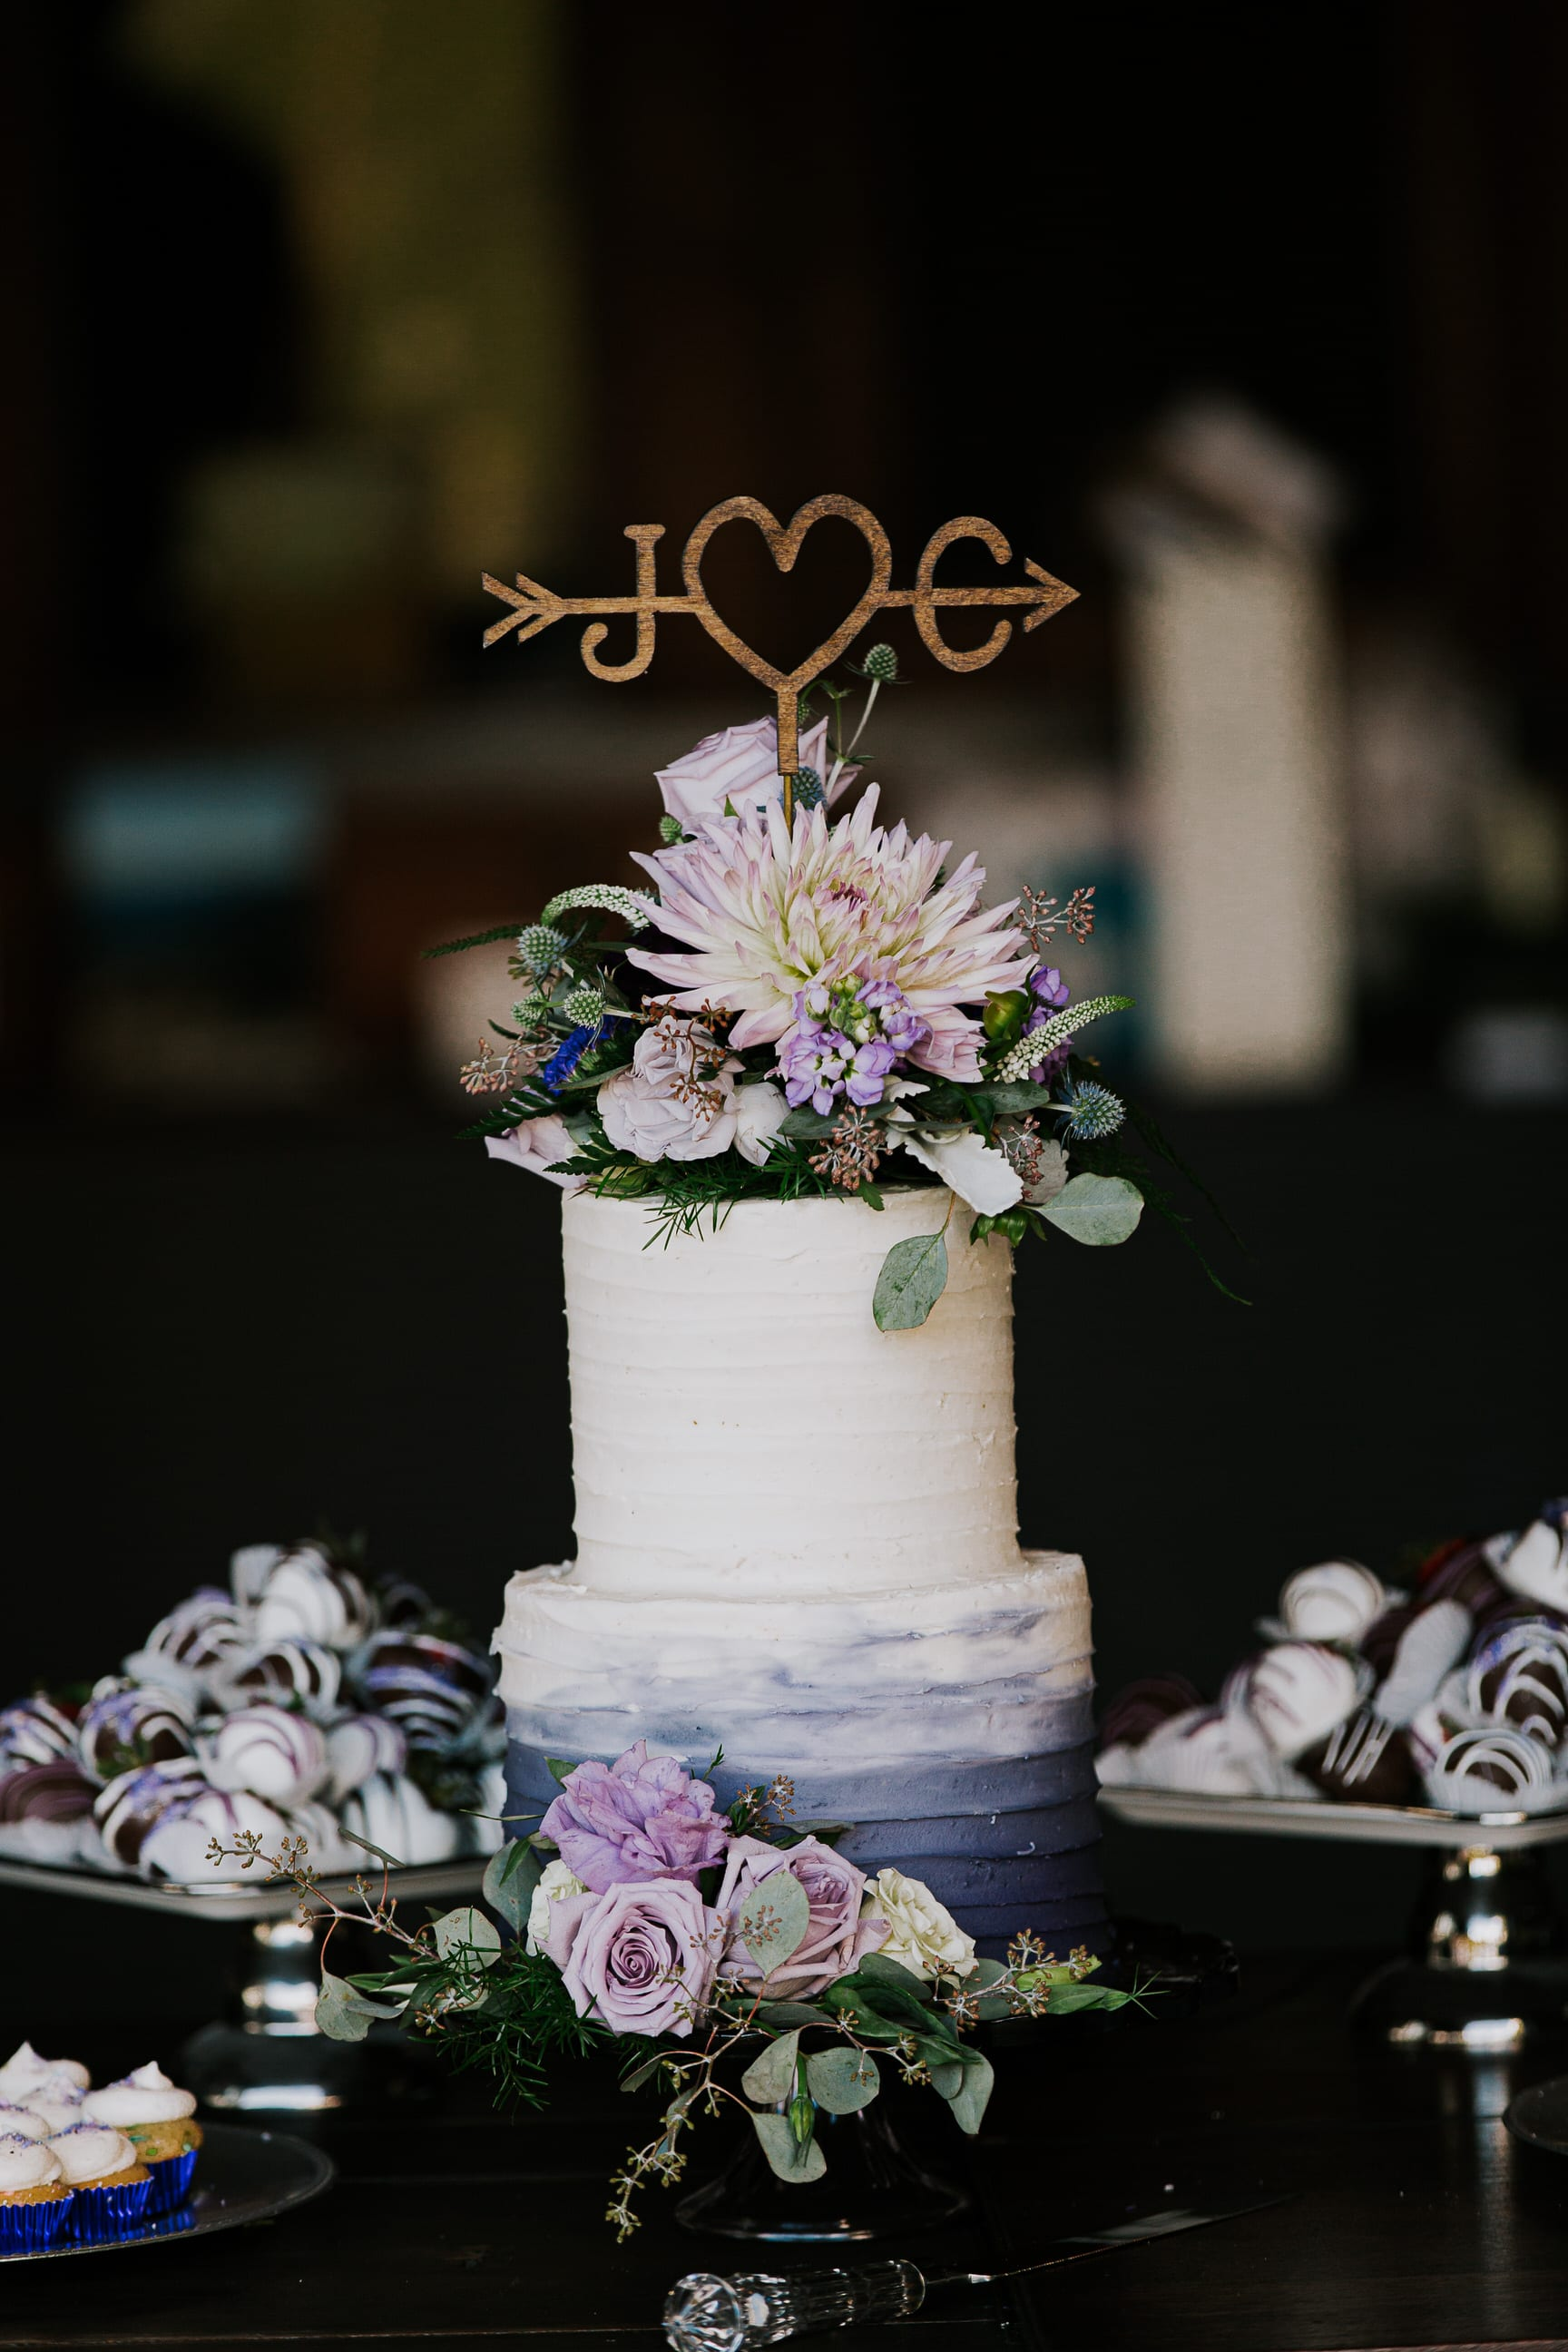 detail of wedding cake